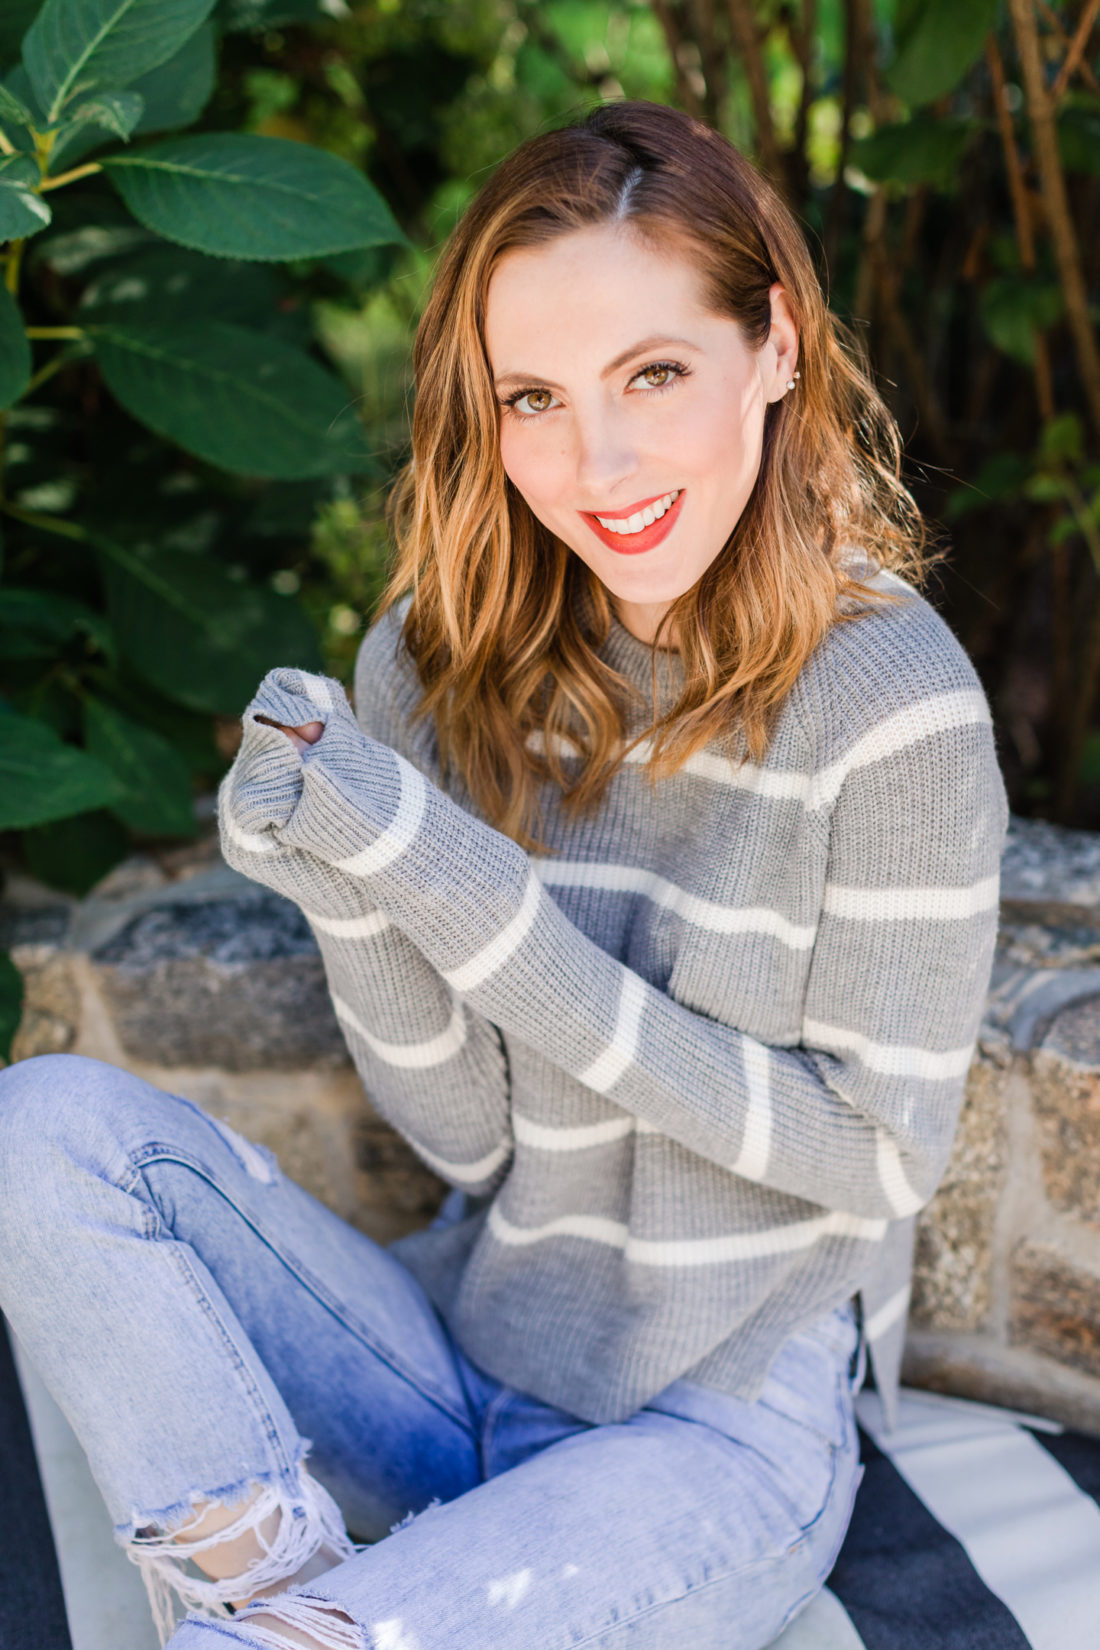 Eva Amurri Martino wears a striped sweater and red heels out by her fire pit in Connecticut